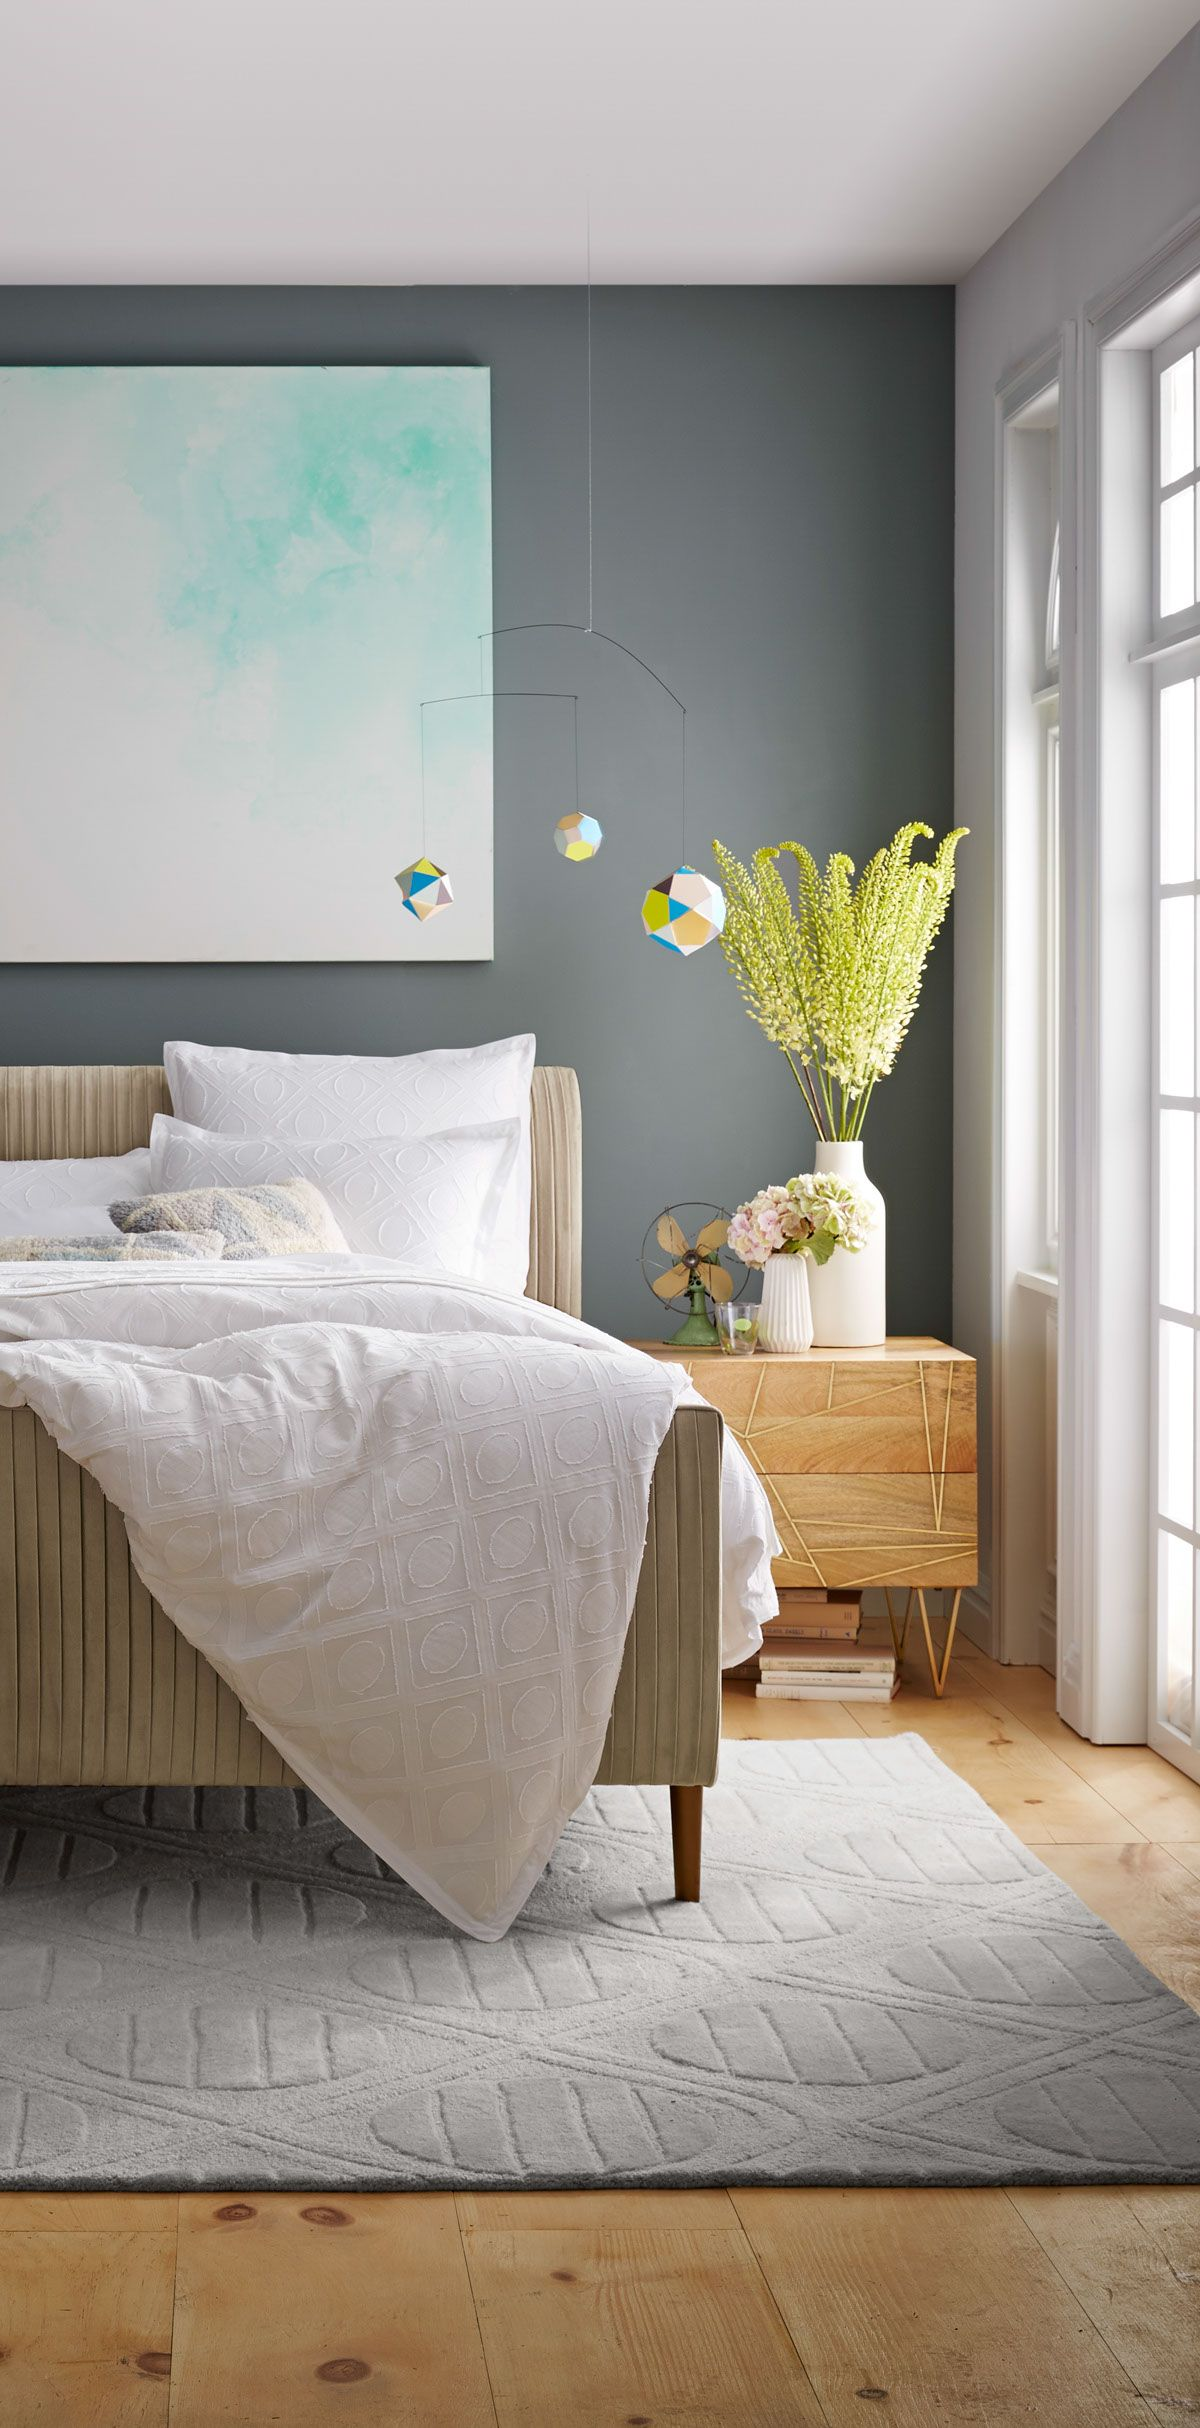 Nap in neutrals find solid white sheets duvets with subtle